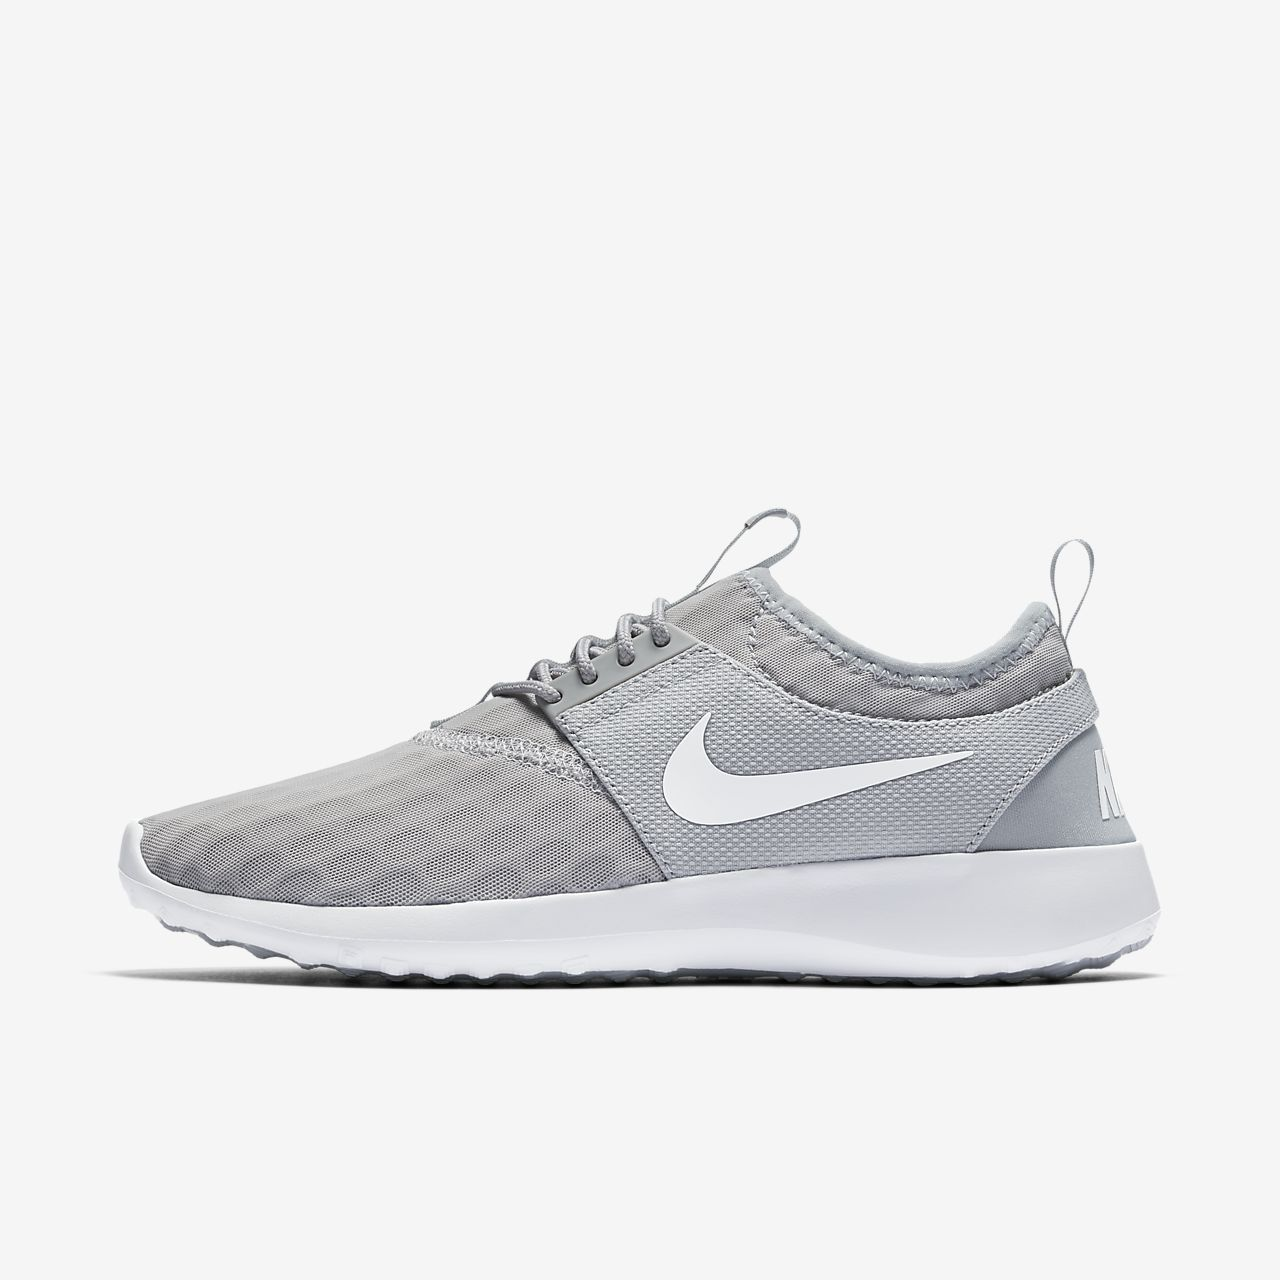 Nike Shoes Women   Nike Sneakers Online at Best Prices ... f289ea74f